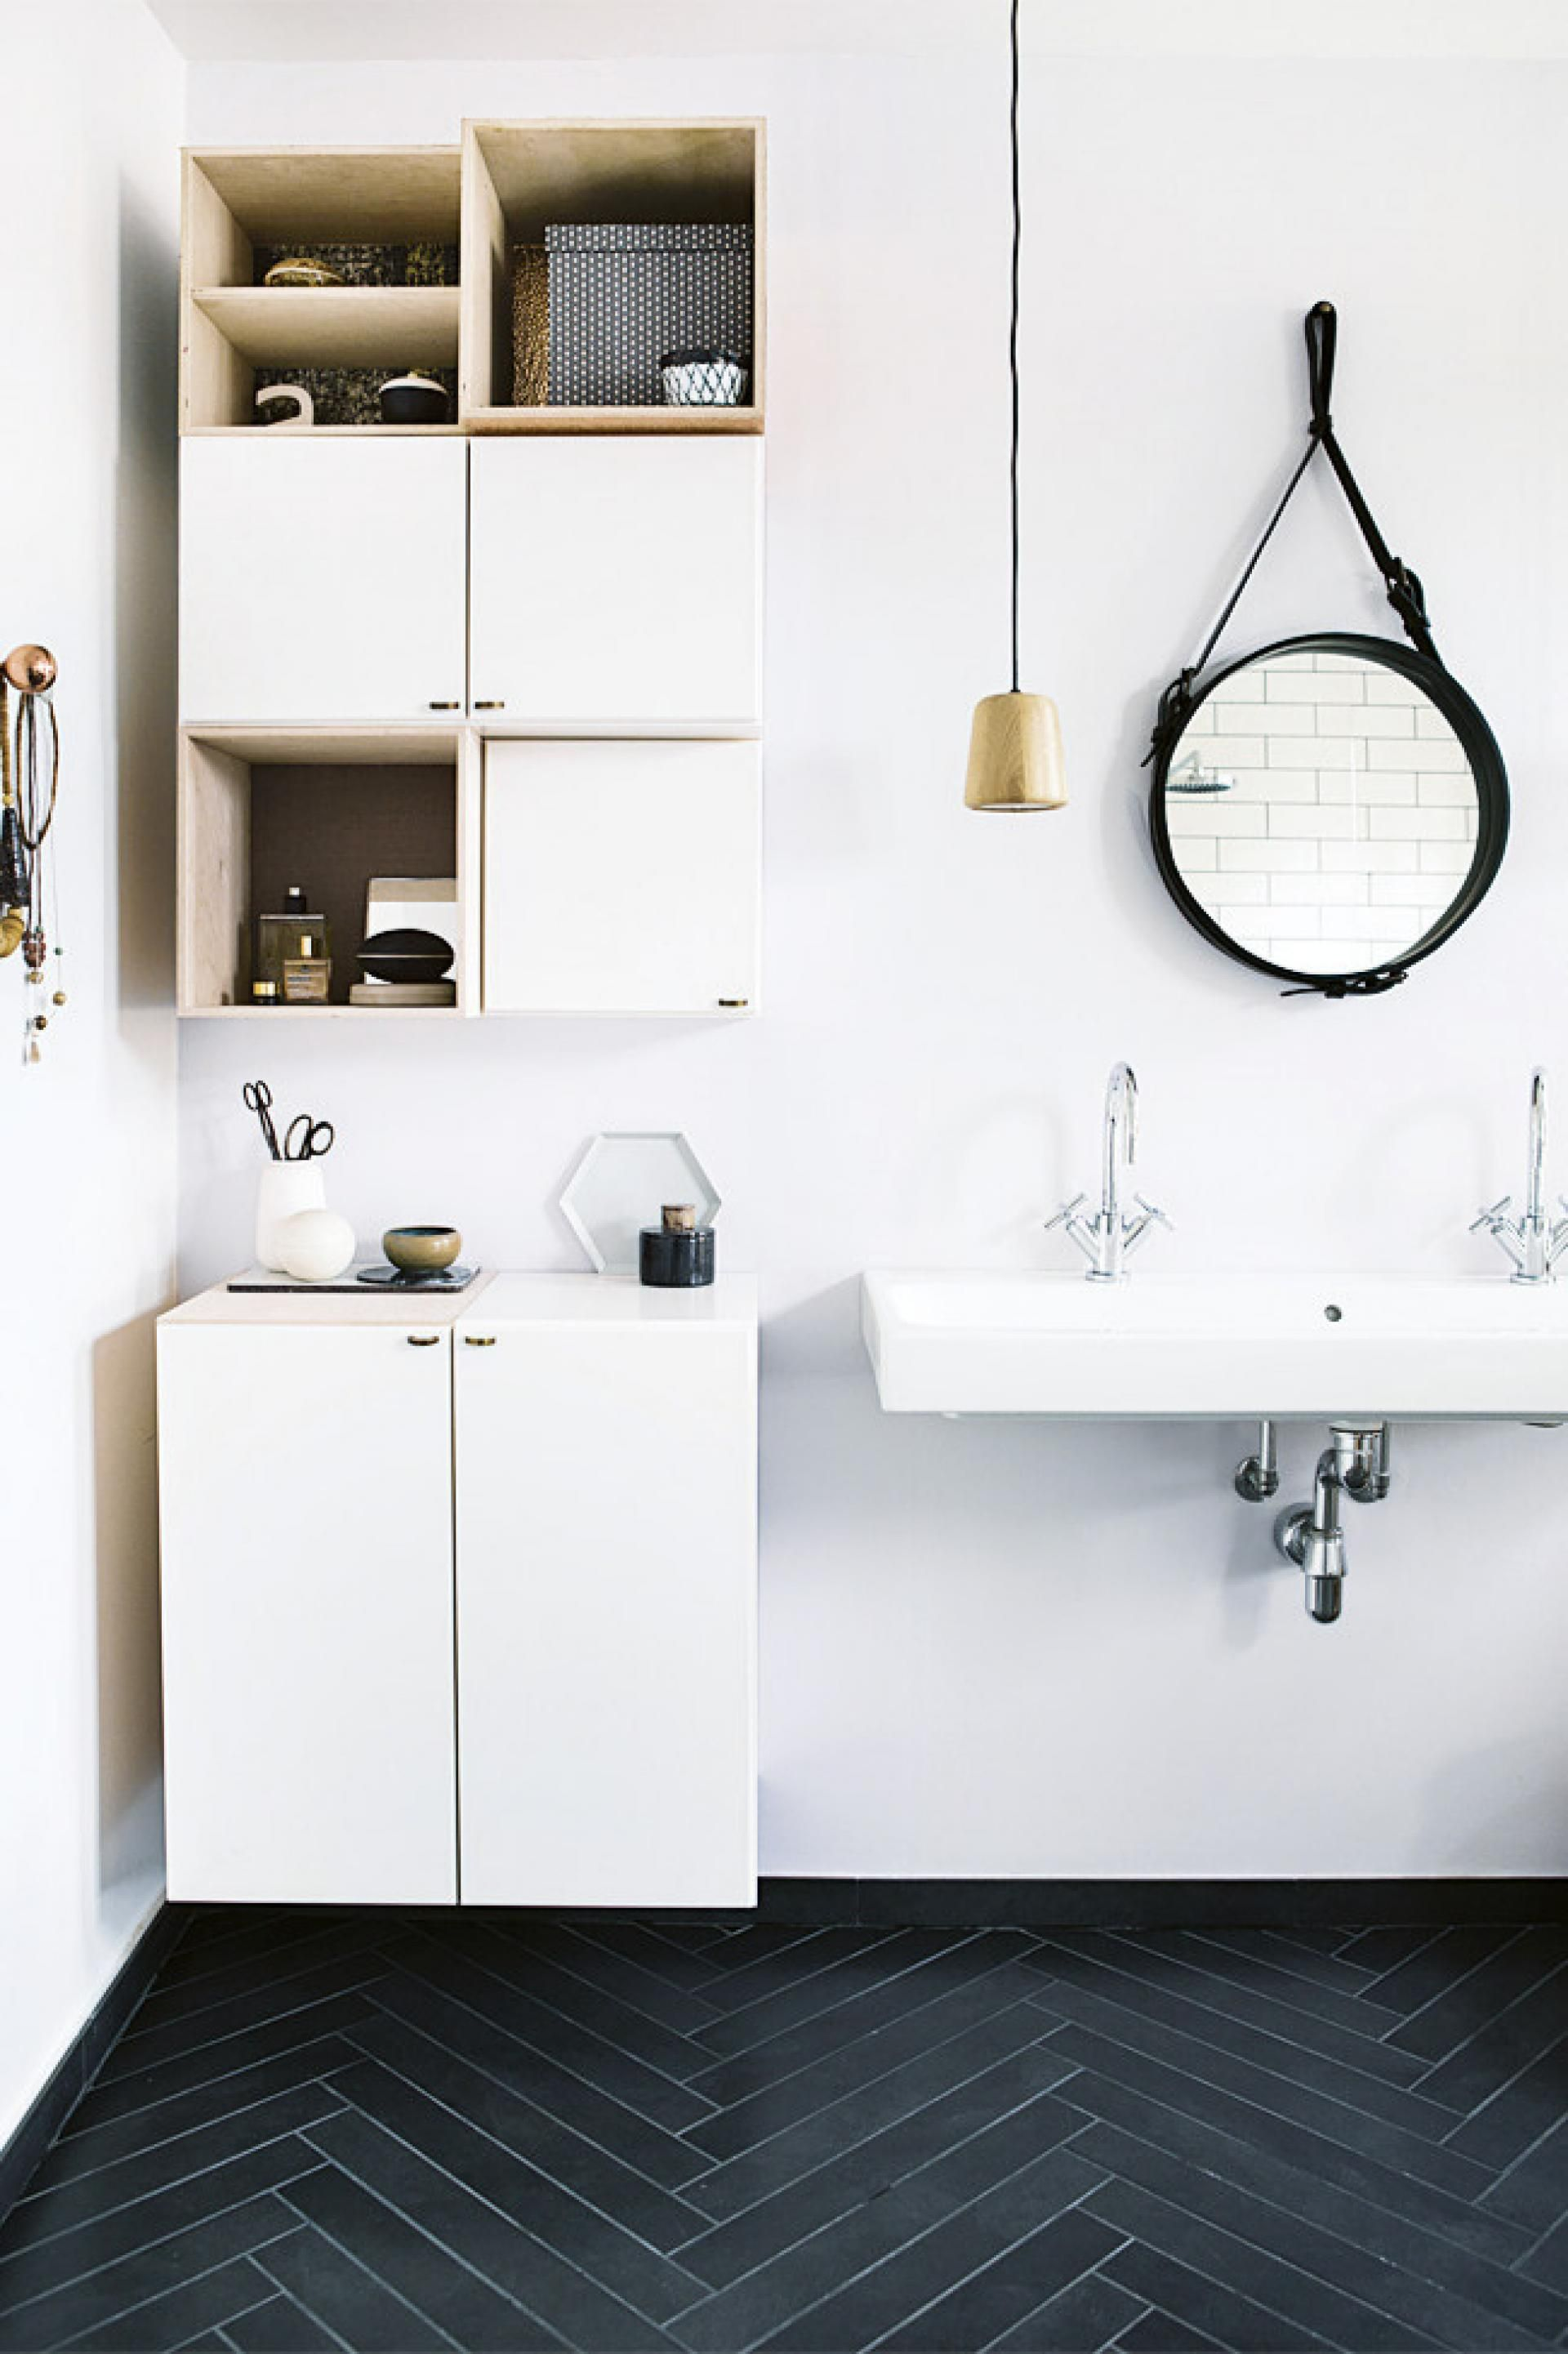 10 Tips For Keeping Things Simple Yet Stylish In Your Bathroom